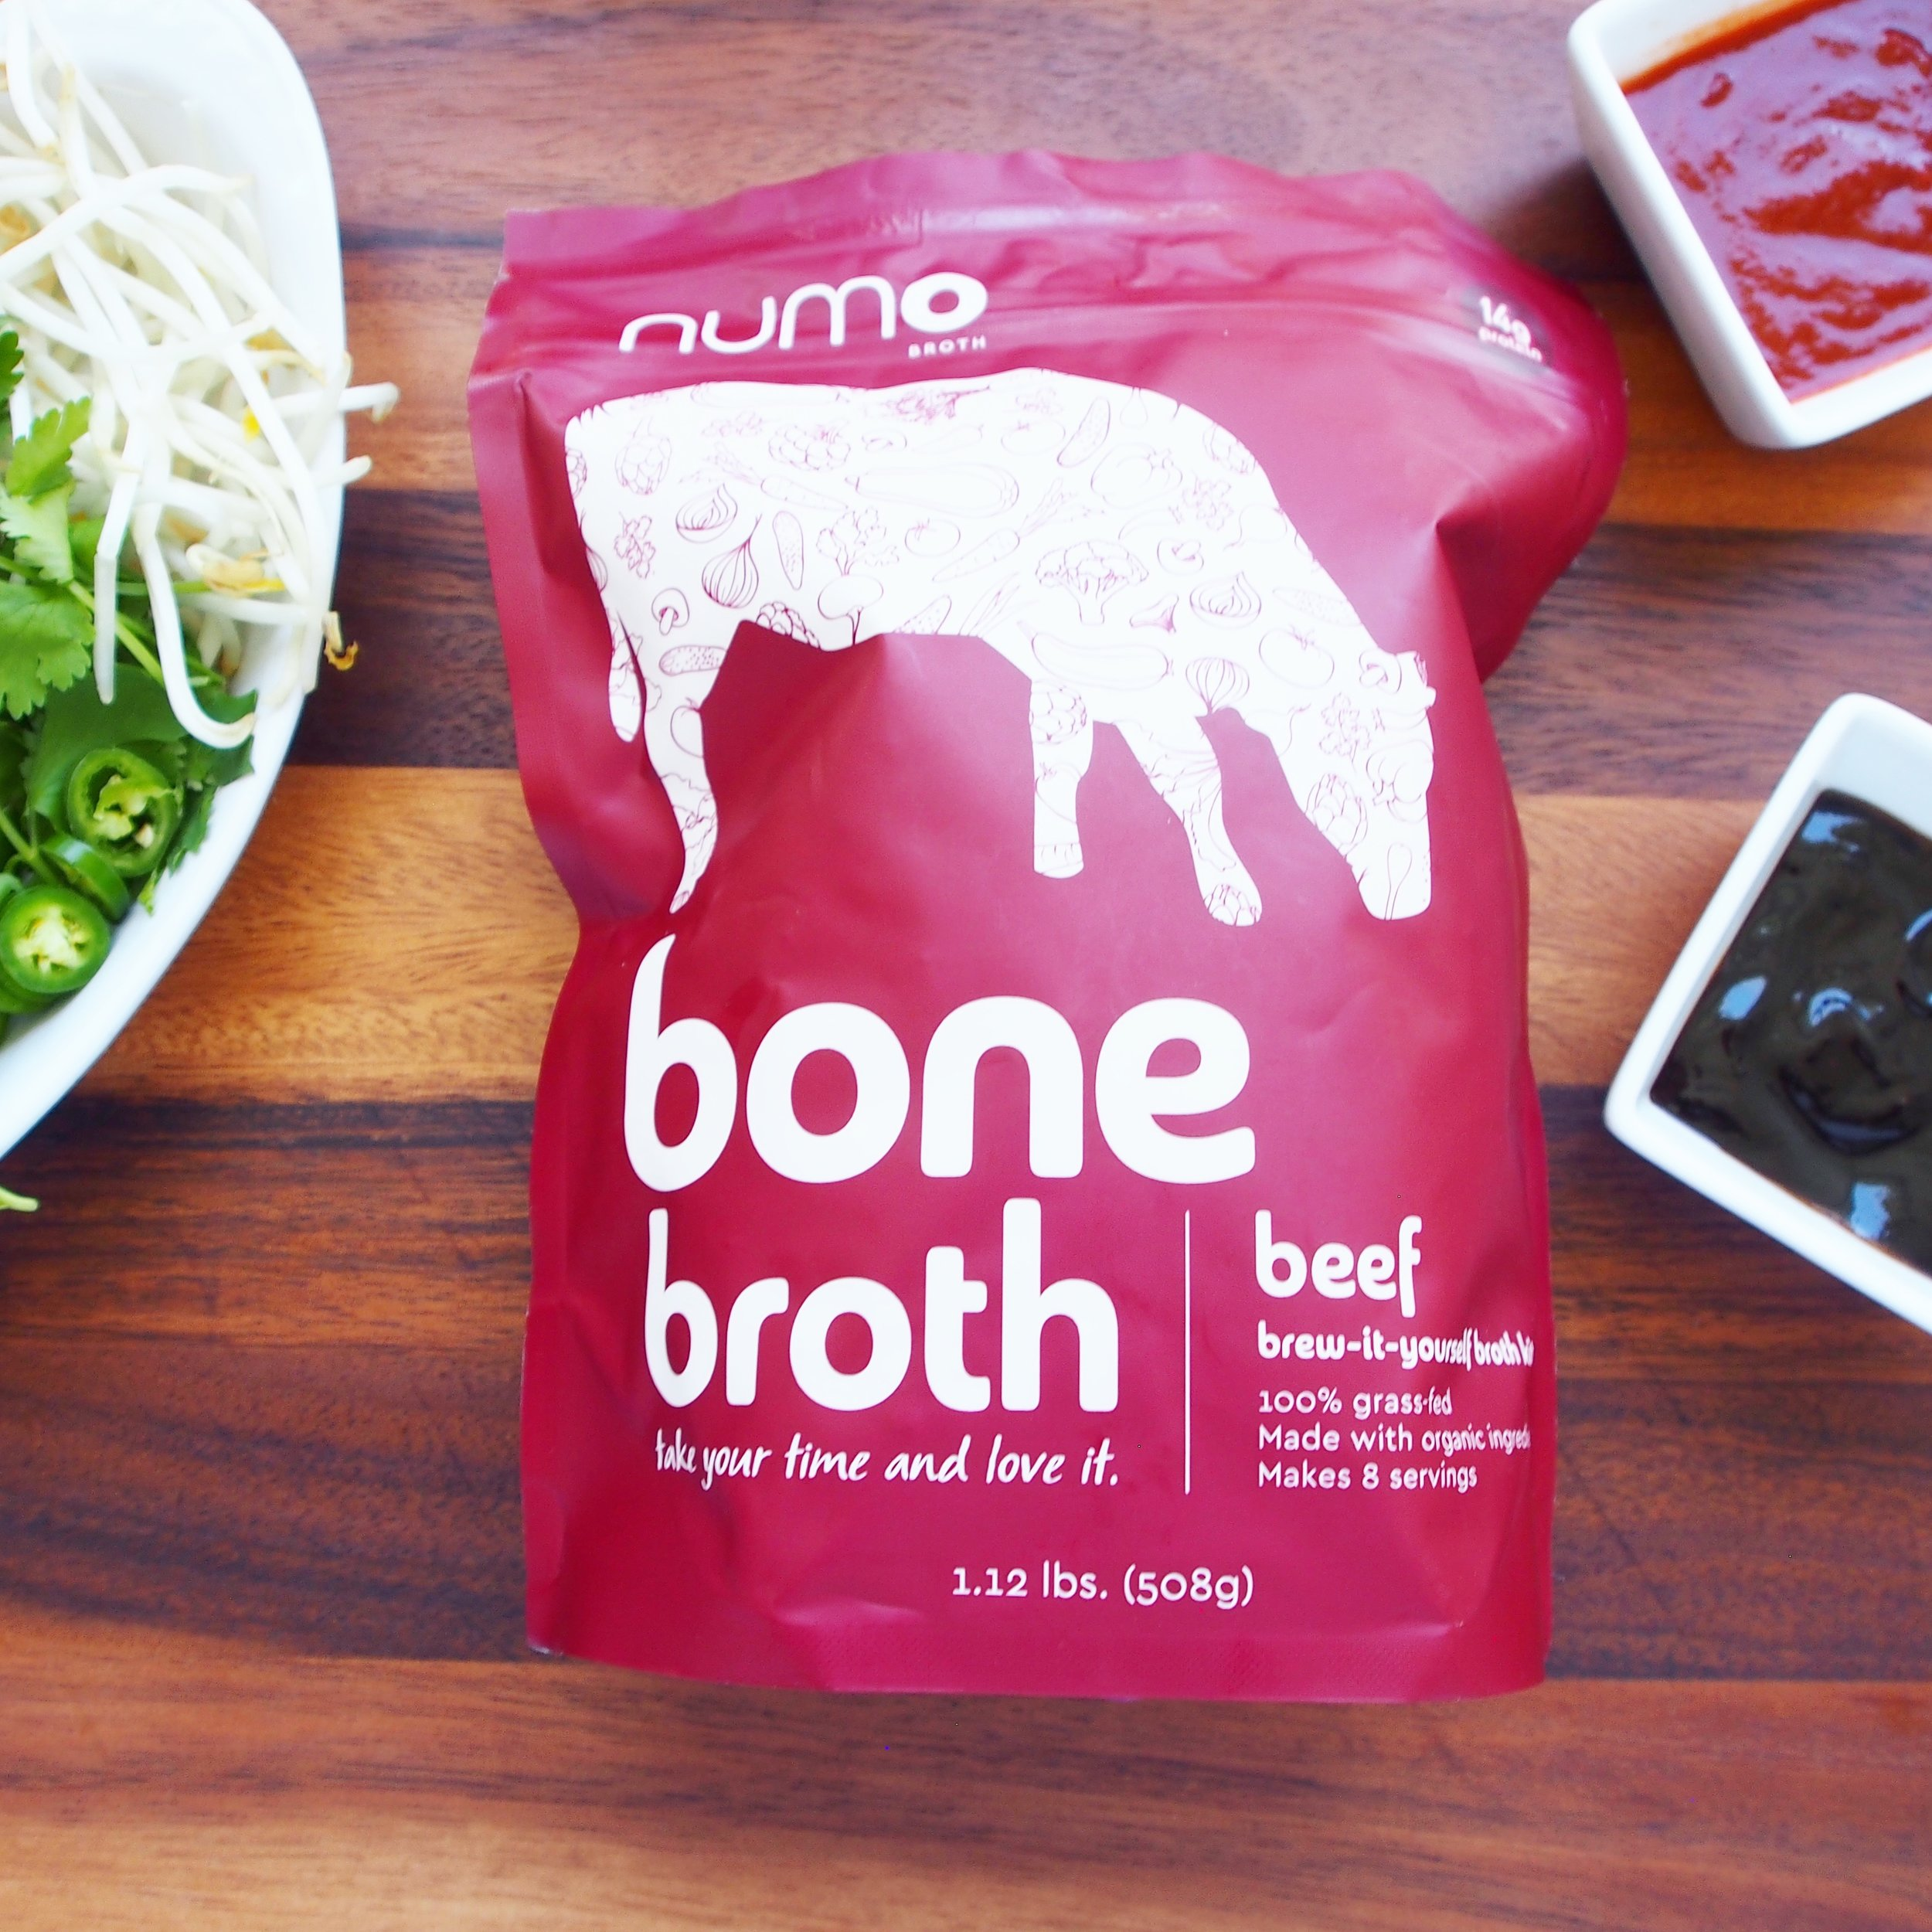 This Numo beef bone broth is the perfect broth to use for your easy beef pho recipe! Simply pop a pouch in your slow cooker, and cook overnight for the most delicious slow-cooker pho you can make with very little hands-on time!